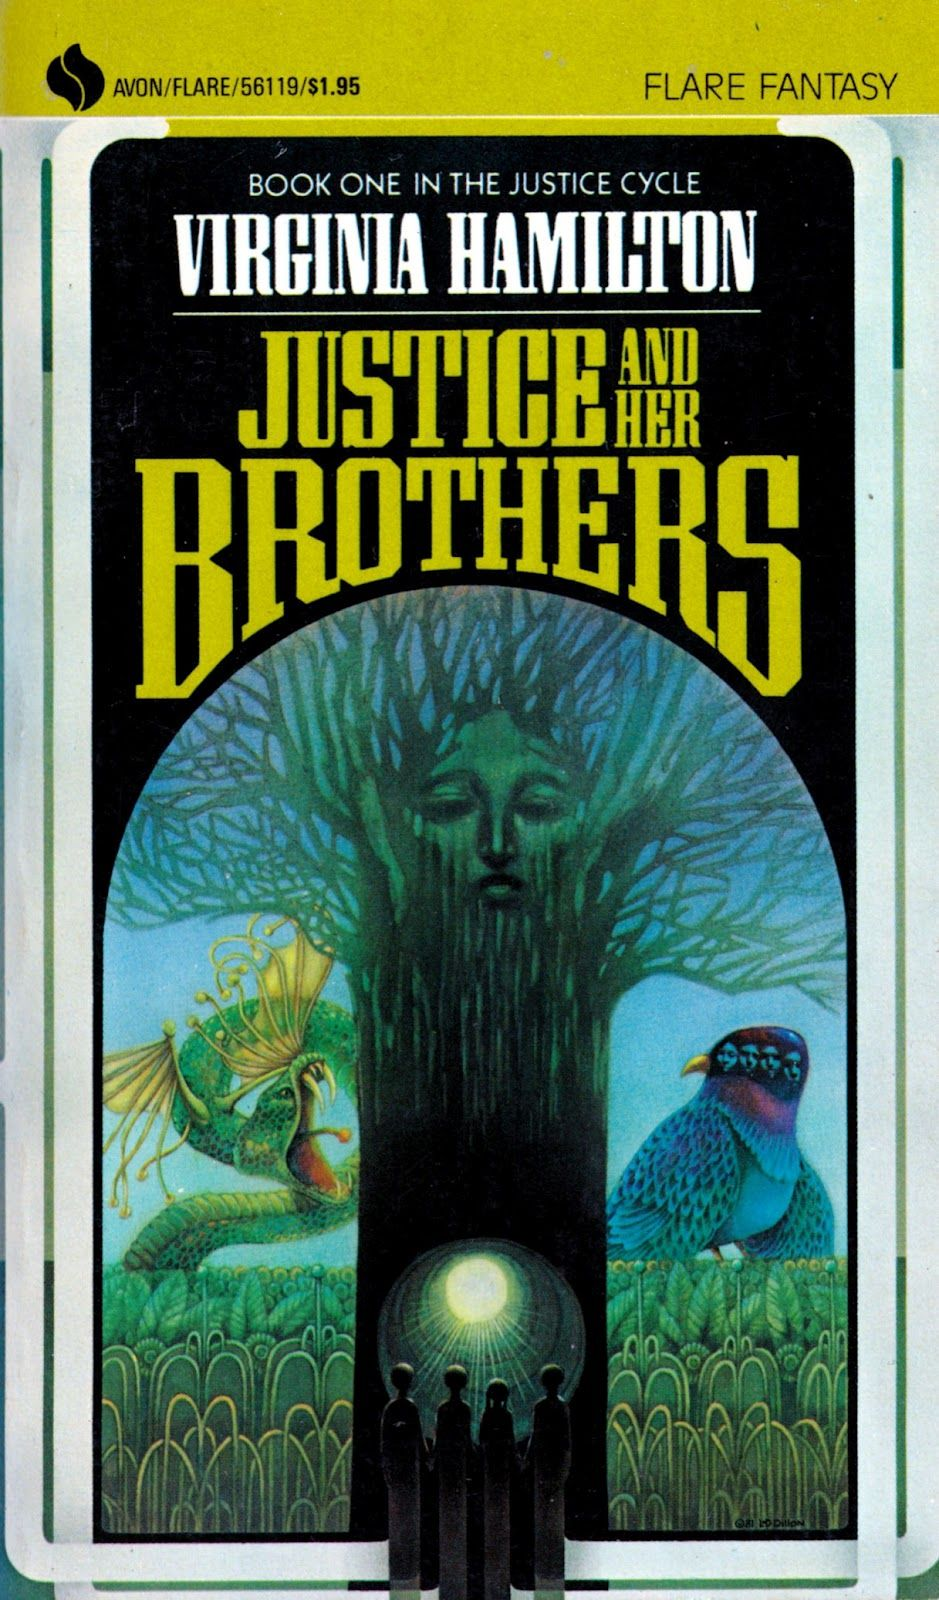 The Art of Leo and Diane Dillon: Virginia Hamilton: The Justice Cycle #1, Justice and Her Brothers